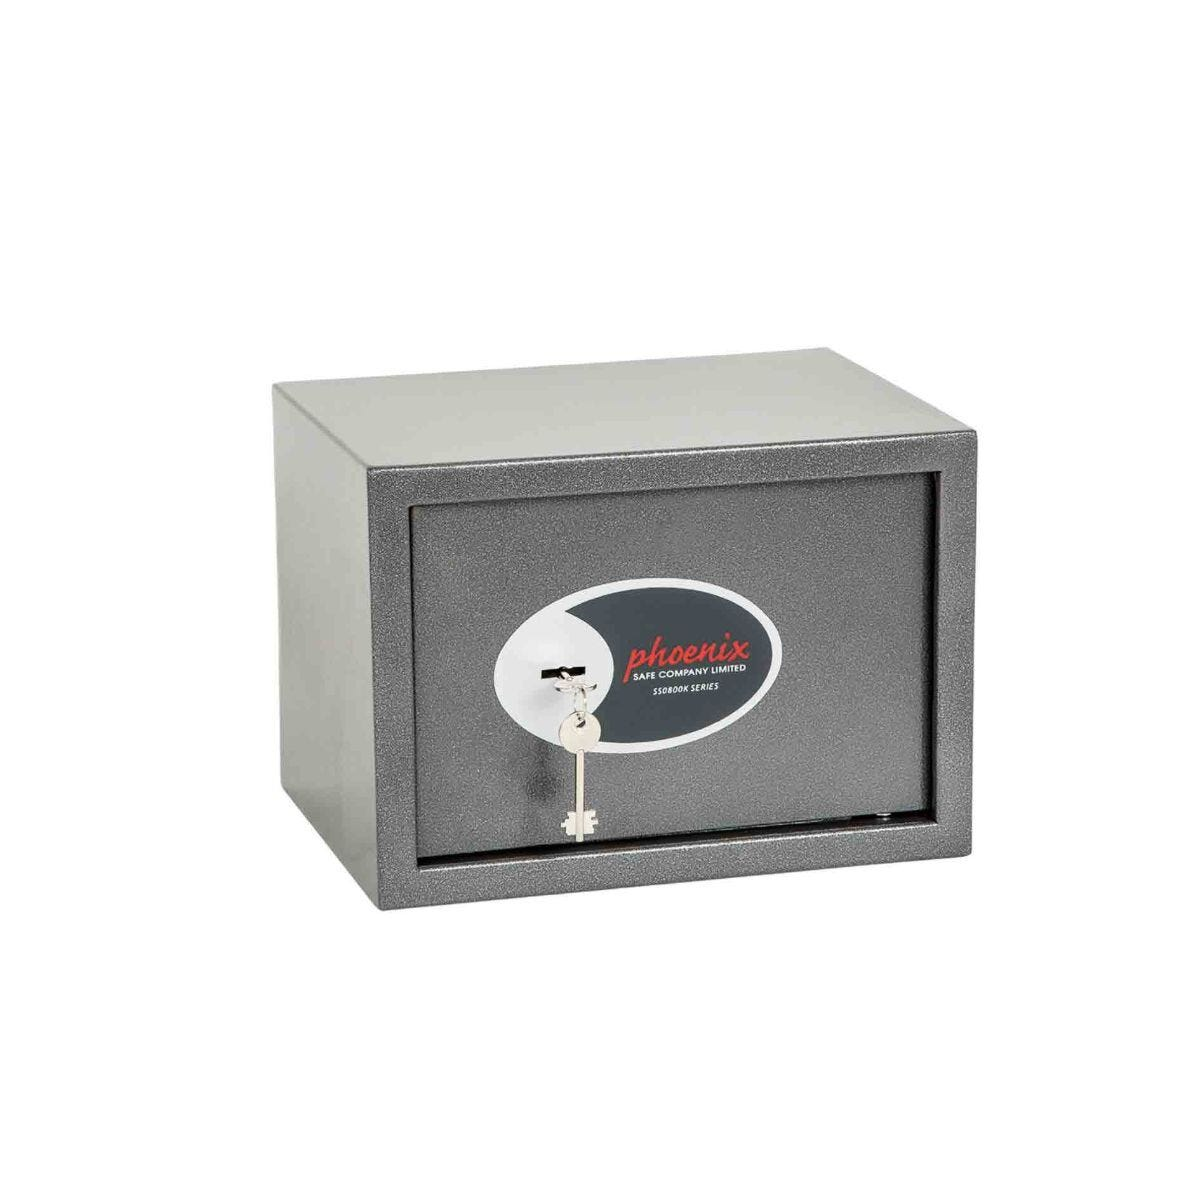 Phoenix Vela Home and Office Security Safe with Key Lock Size 2